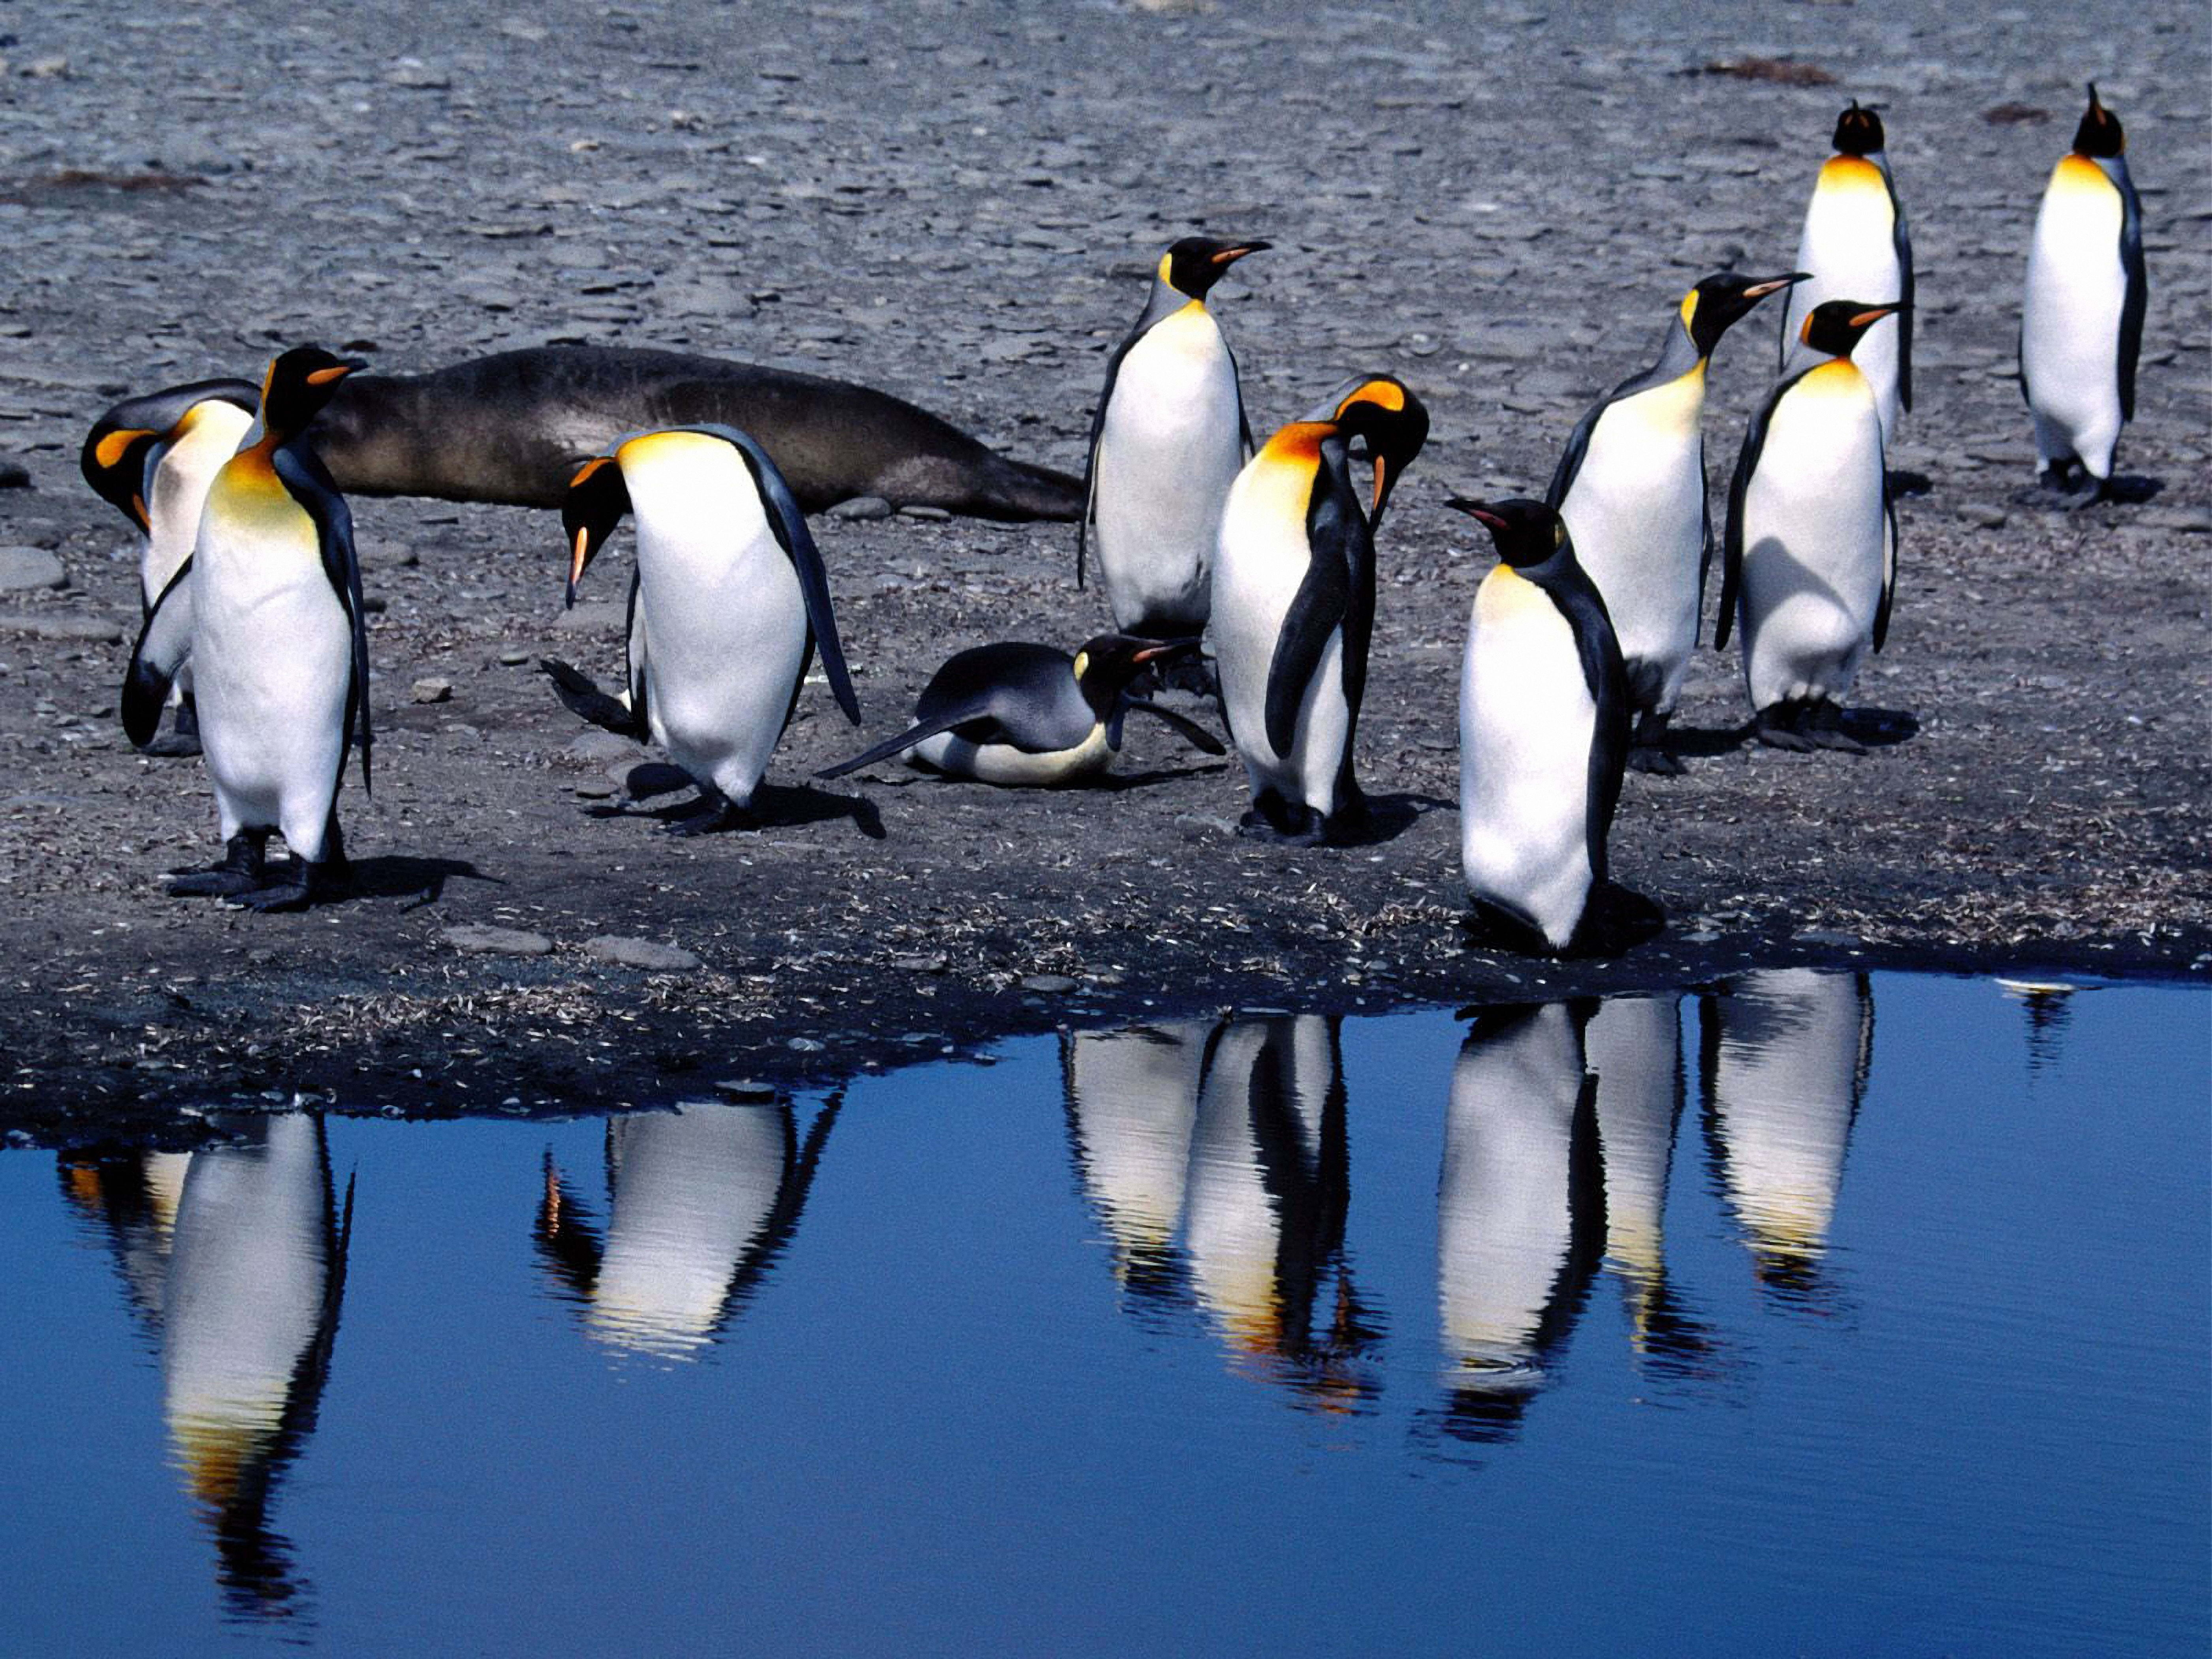 134203 download wallpaper Animals, Pinguins, Summer, Thaw screensavers and pictures for free